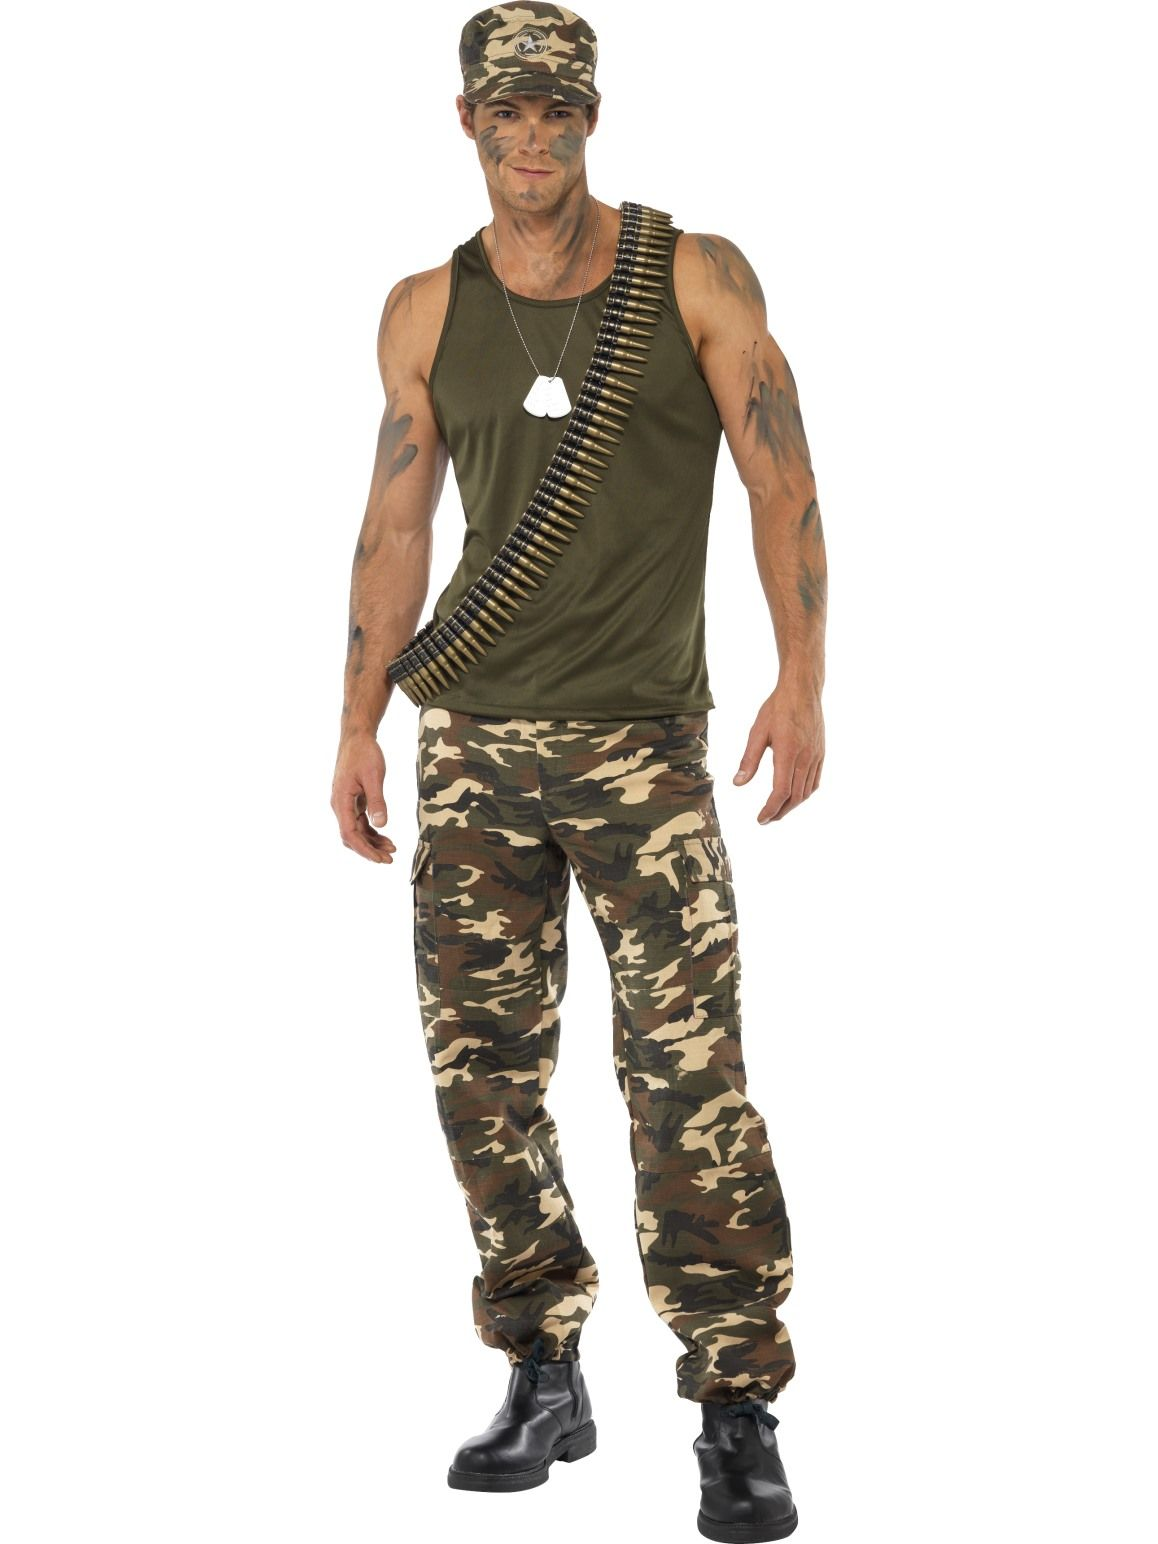 Combat Soldier Mens Khaki Camo Costume - Buy Online Only